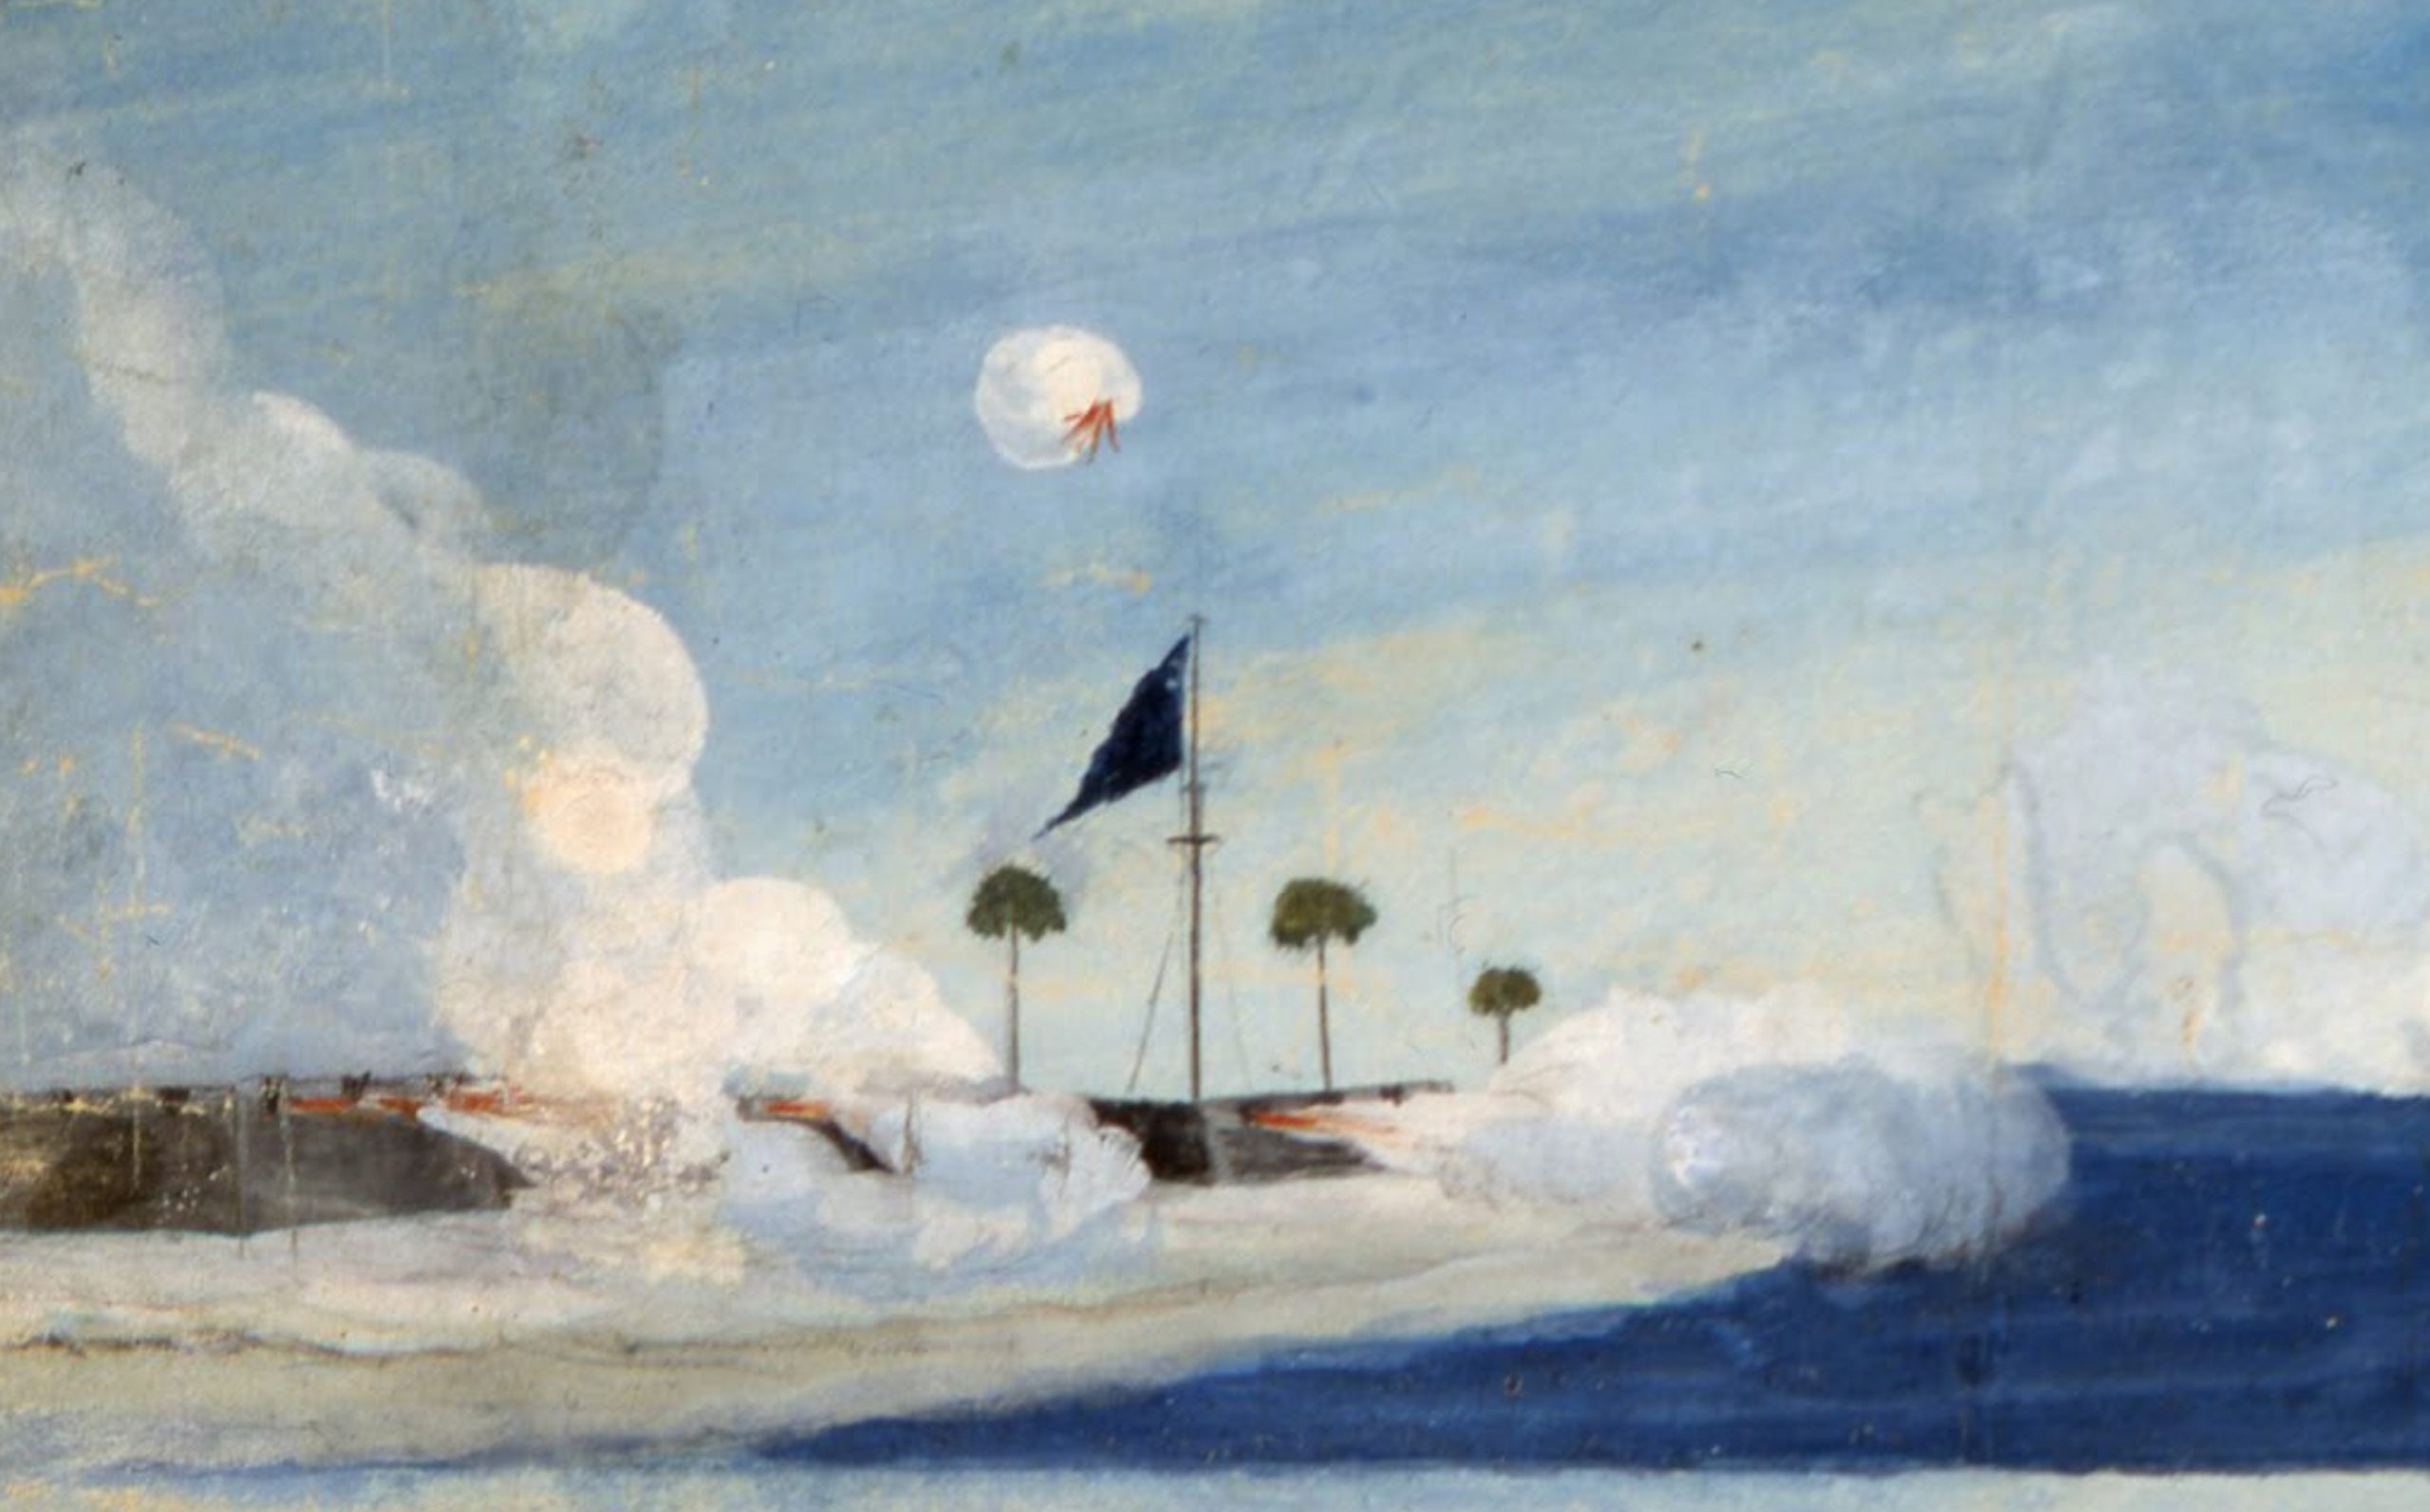 Painted scene of a fort on a coastline firing its cannons, with a flag flying and palm trees